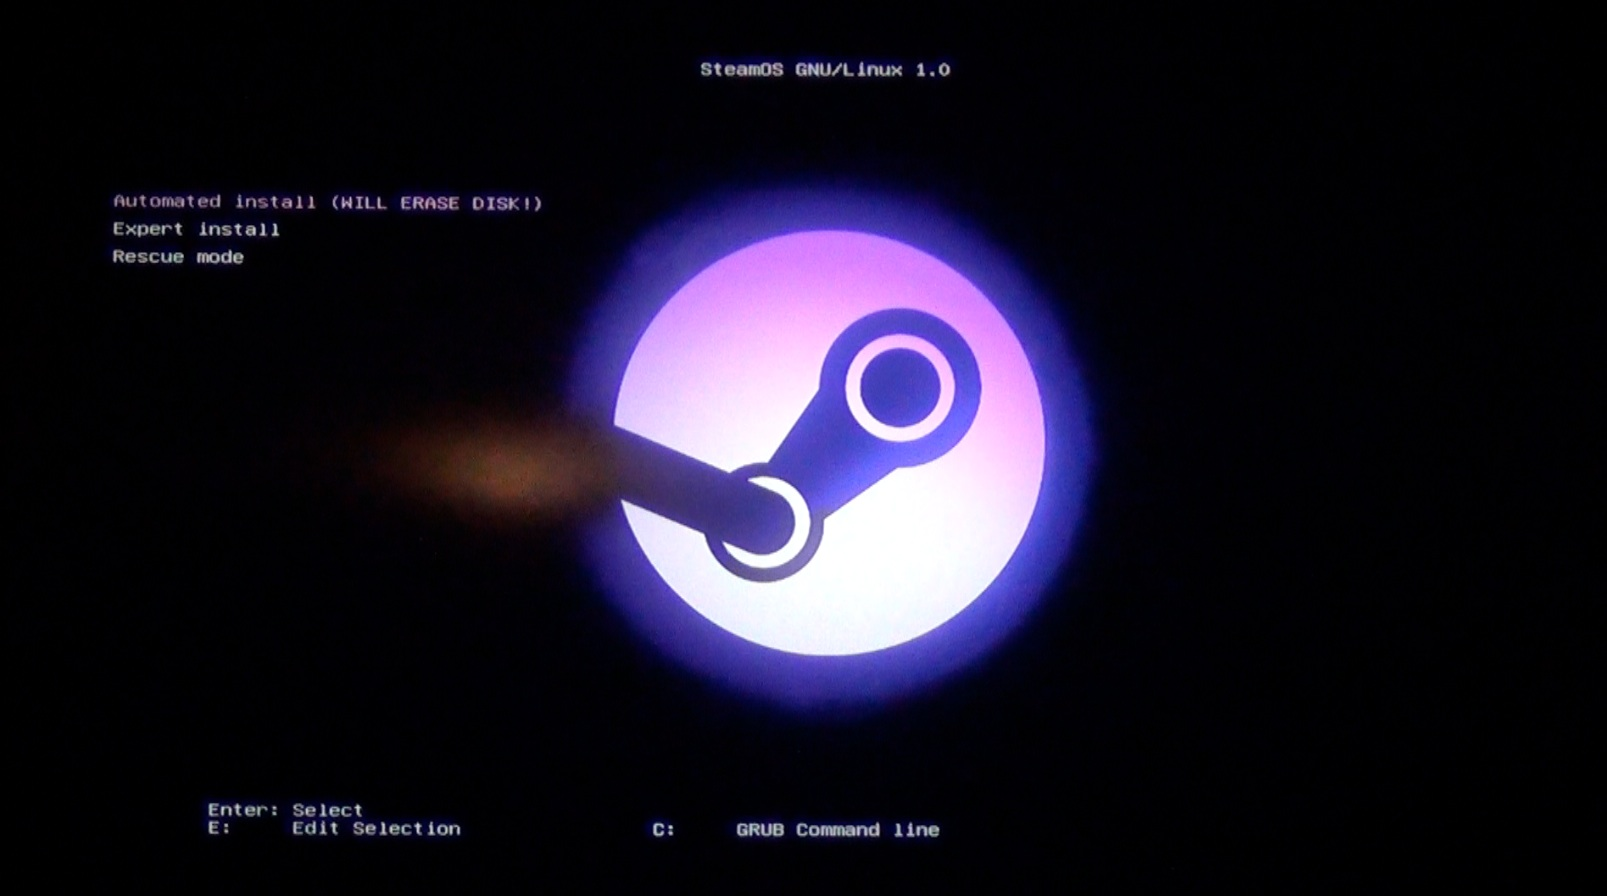 how to get steam os on pc